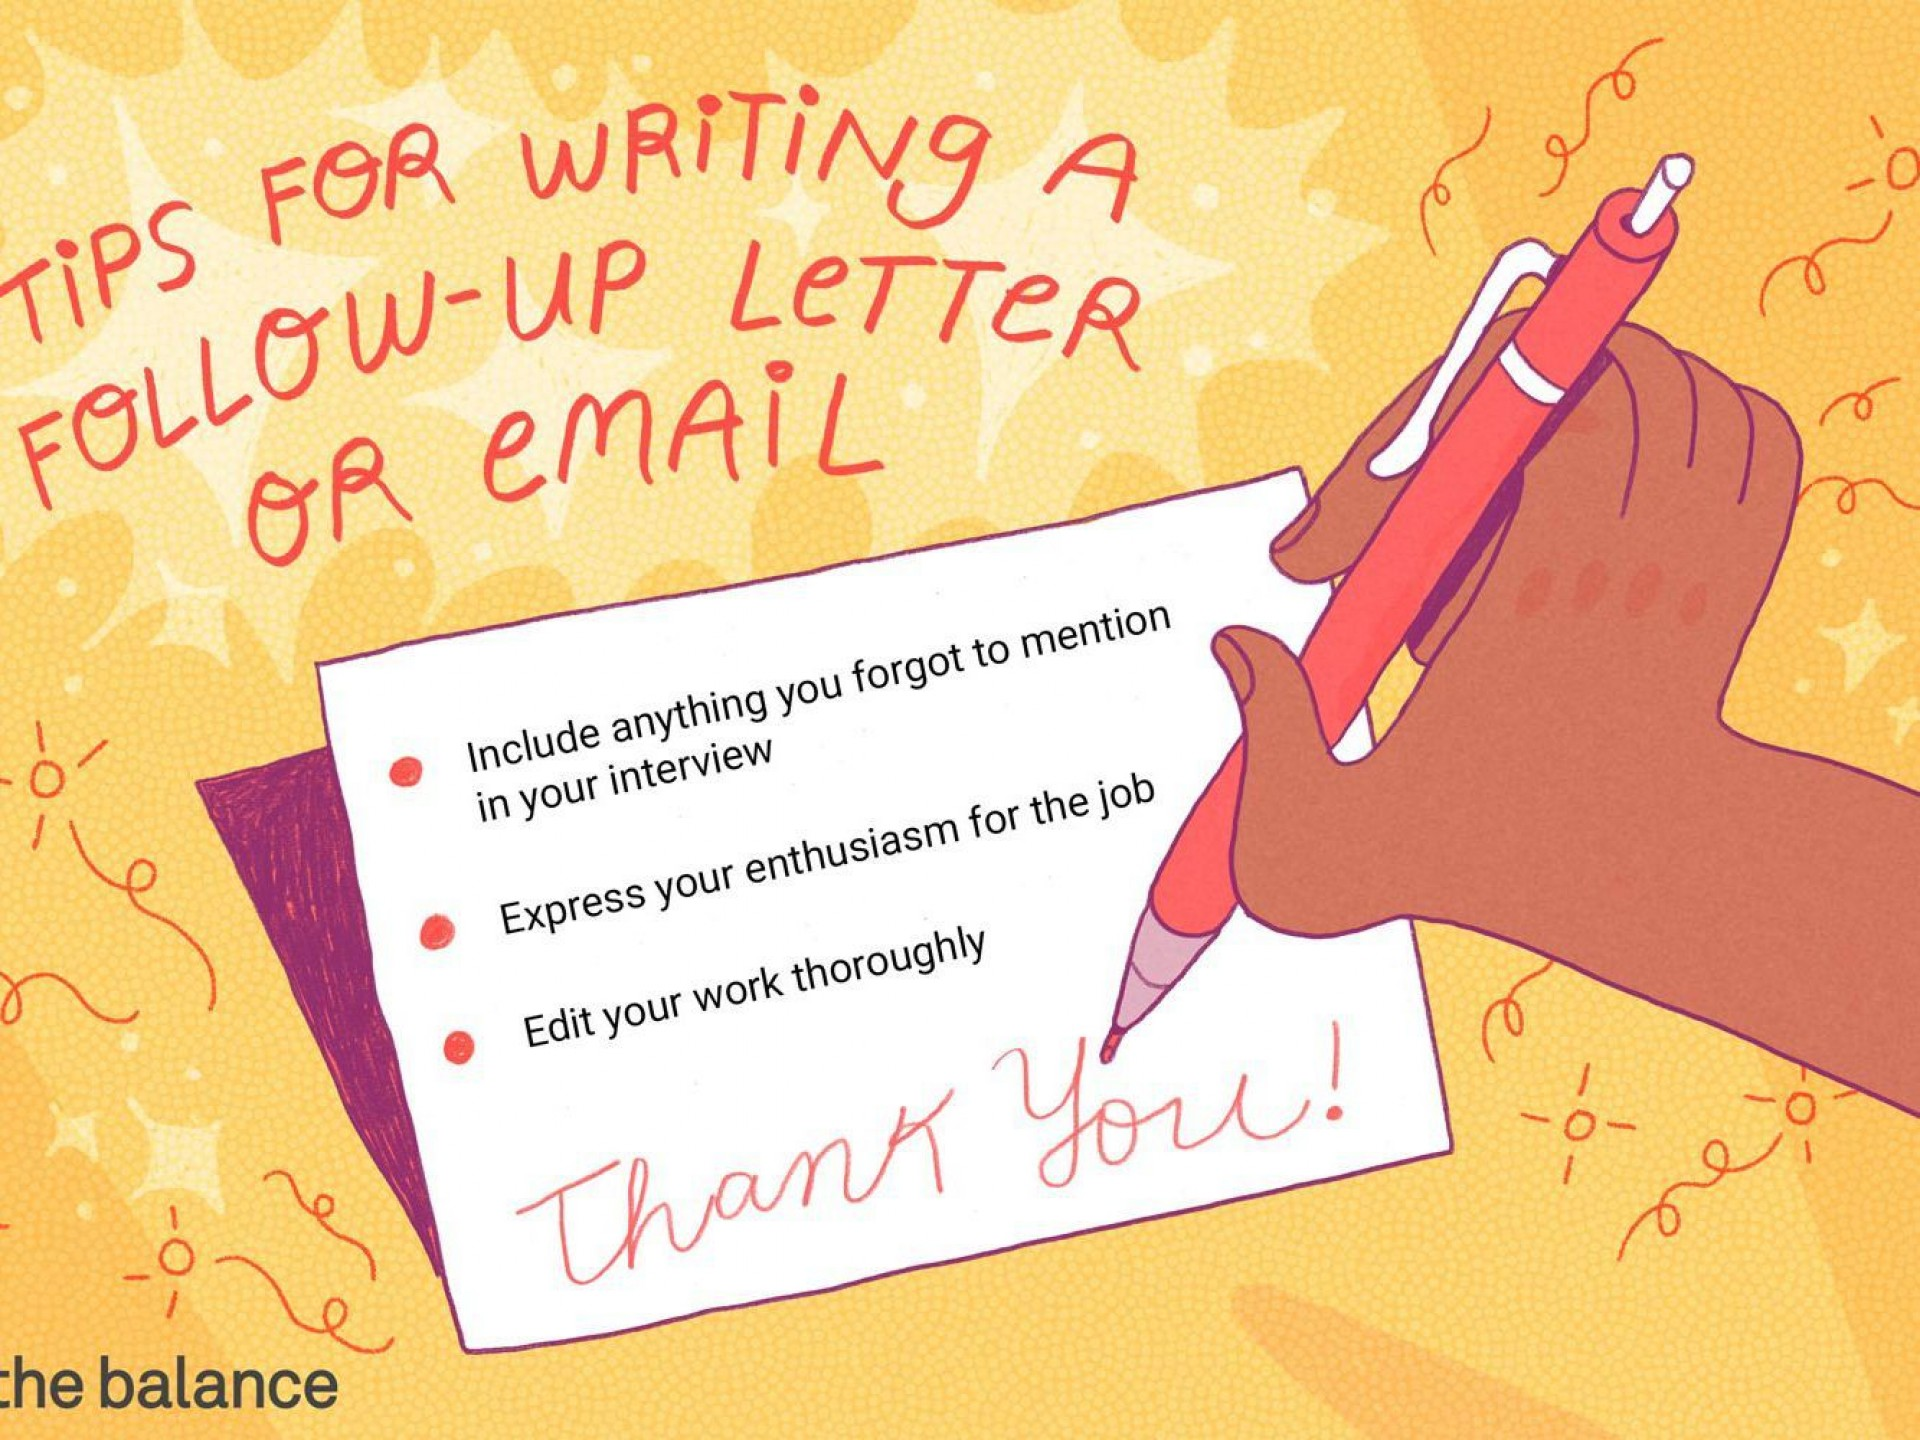 006 Fantastic Follow Up Email Sample After No Response Template High Resolution 1920